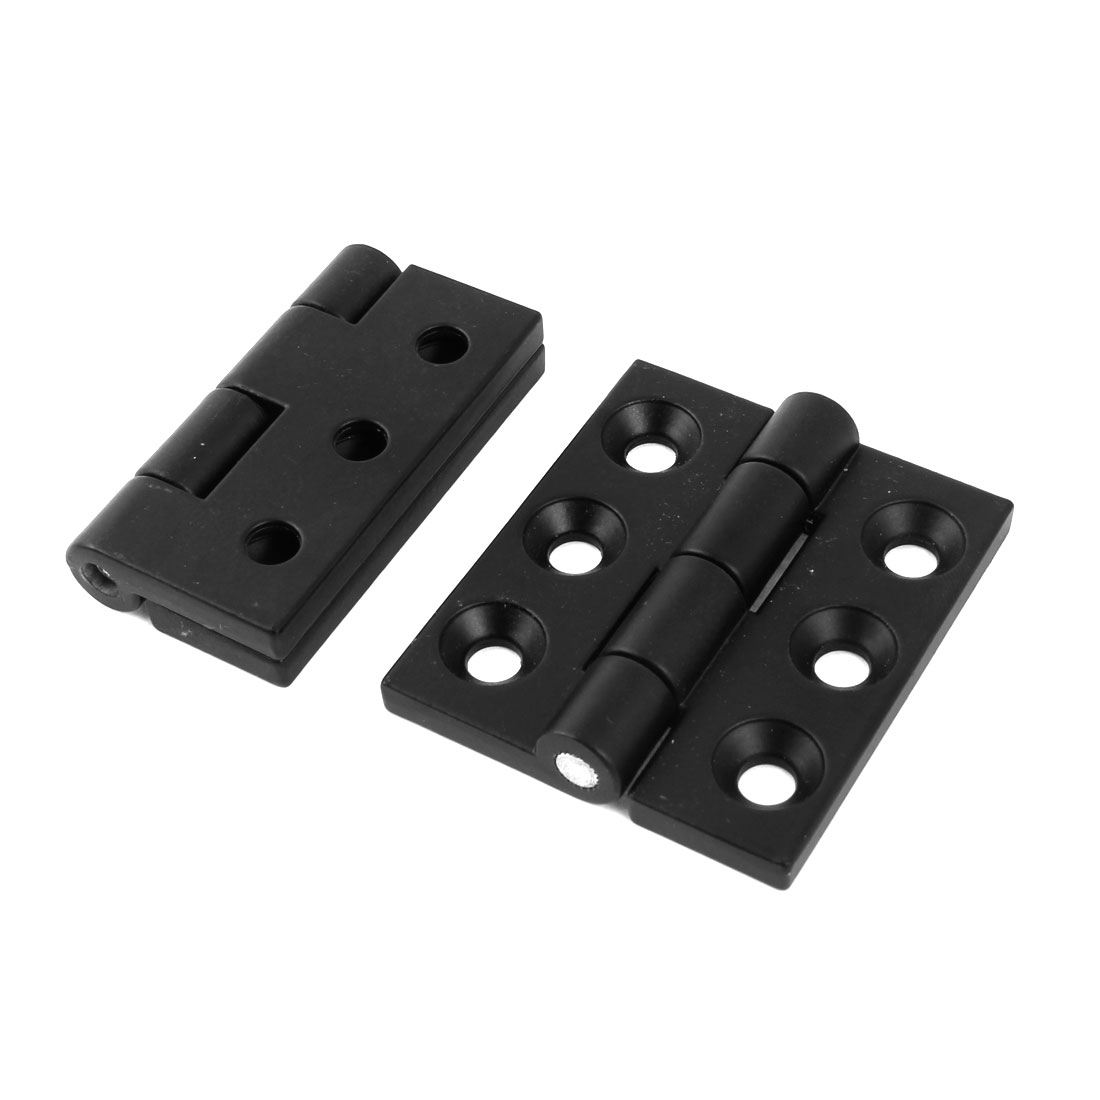 2pcs 65mm Long Black Cabinet Closet Door Butt Hinge Replacement